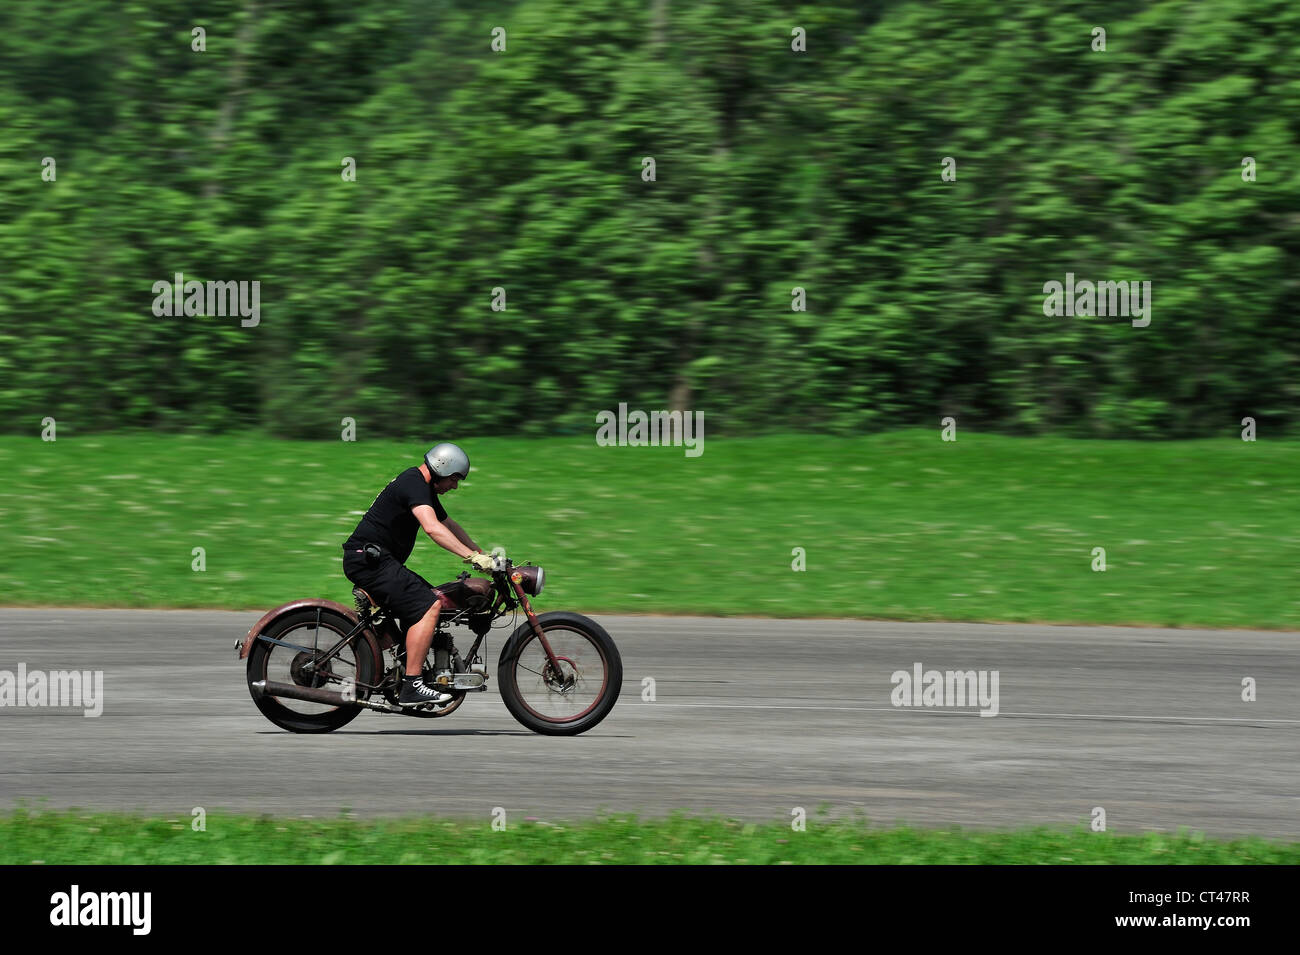 A motorcyclist travelling along a road but not looking where he is going. Motion blur on wheels and background - Stock Image